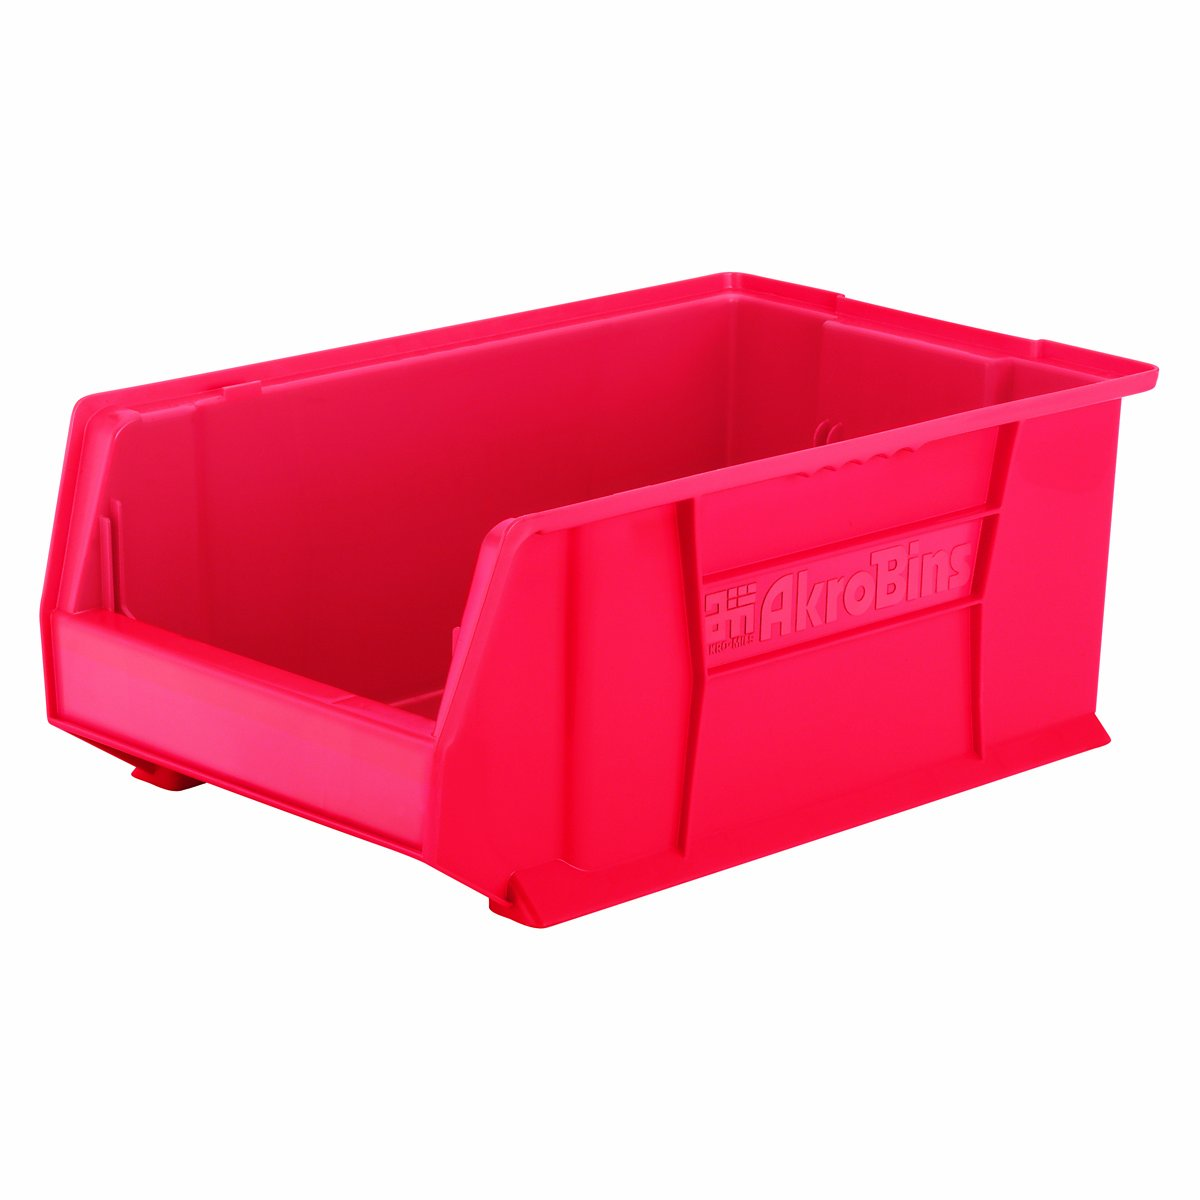 Akro-Mils 30281 20-Inch D by 12-Inch W by 8-Inch H Super Size Plastic Stacking Storage Akro Bin, Red, Case of 3